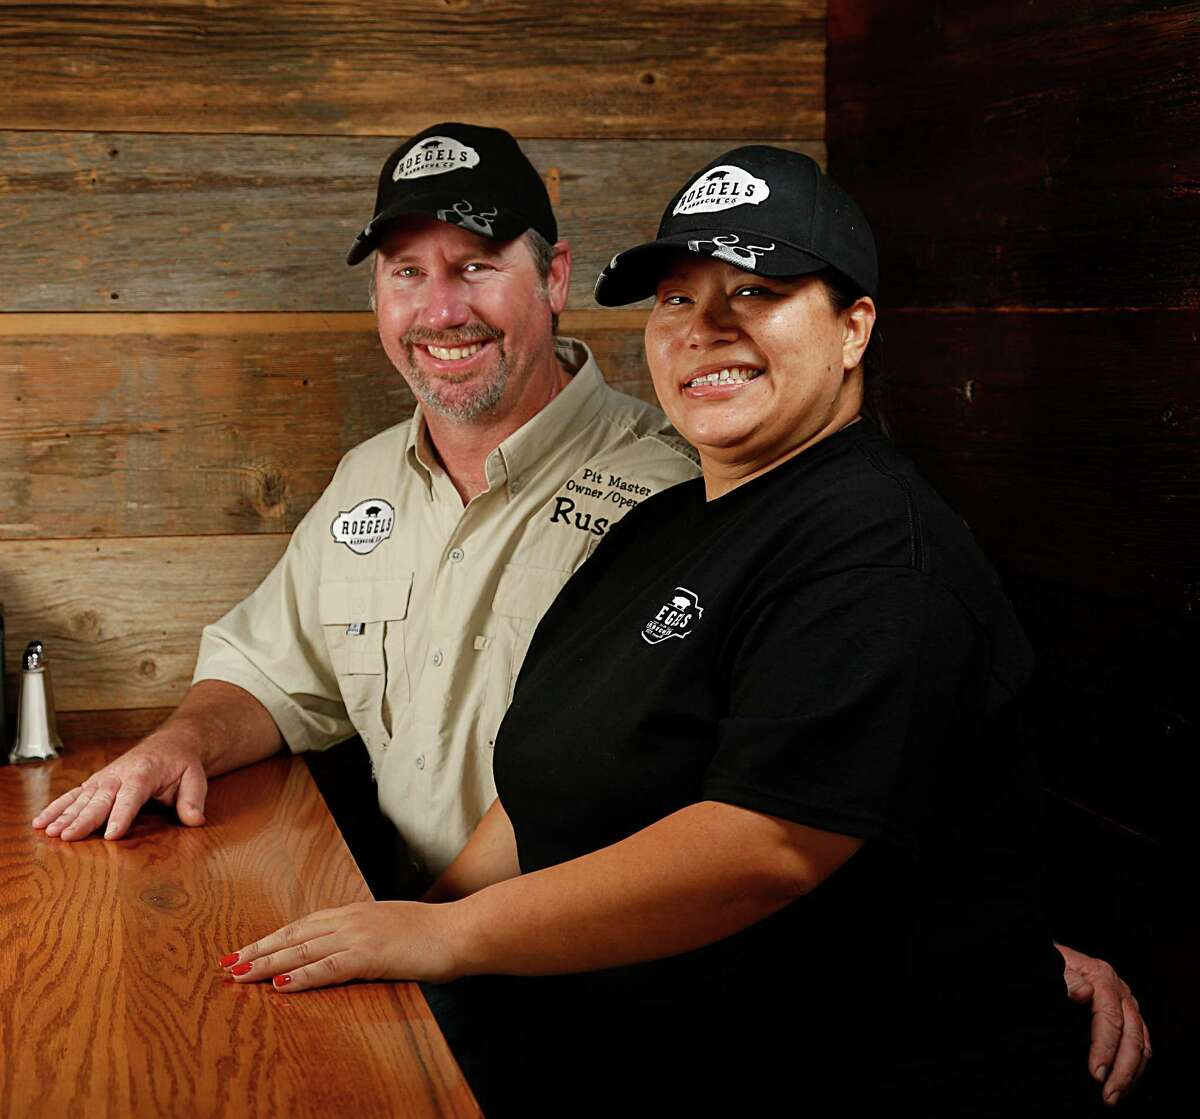 Roegels Barbecue Co. owners Russell Roegel left, and his wife Misty Roegels.